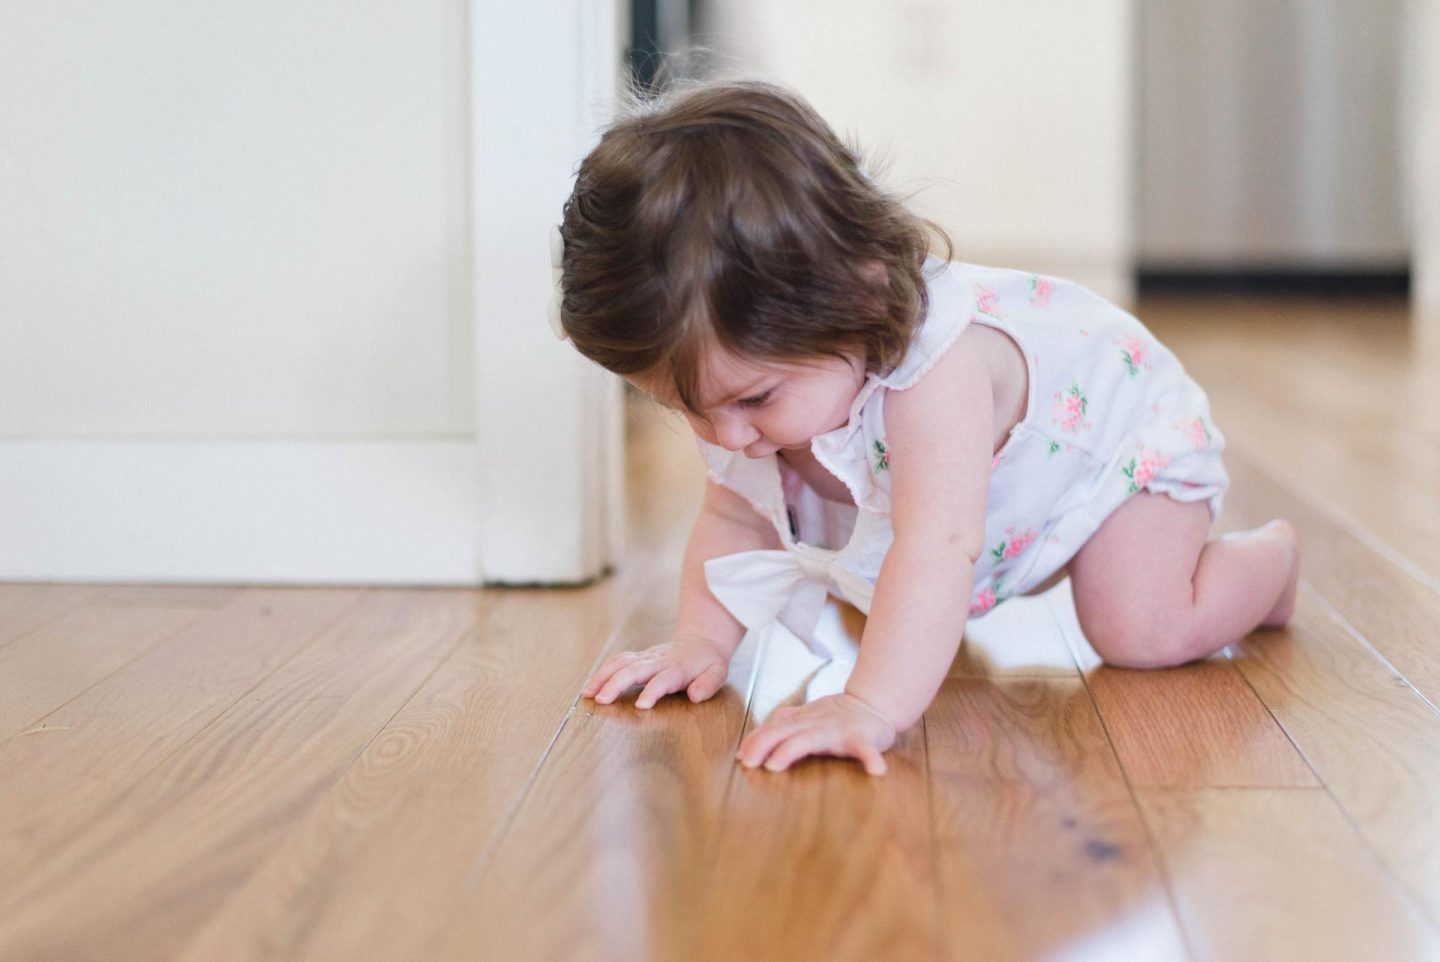 Ready, steady – go! Let's babyproof your home.